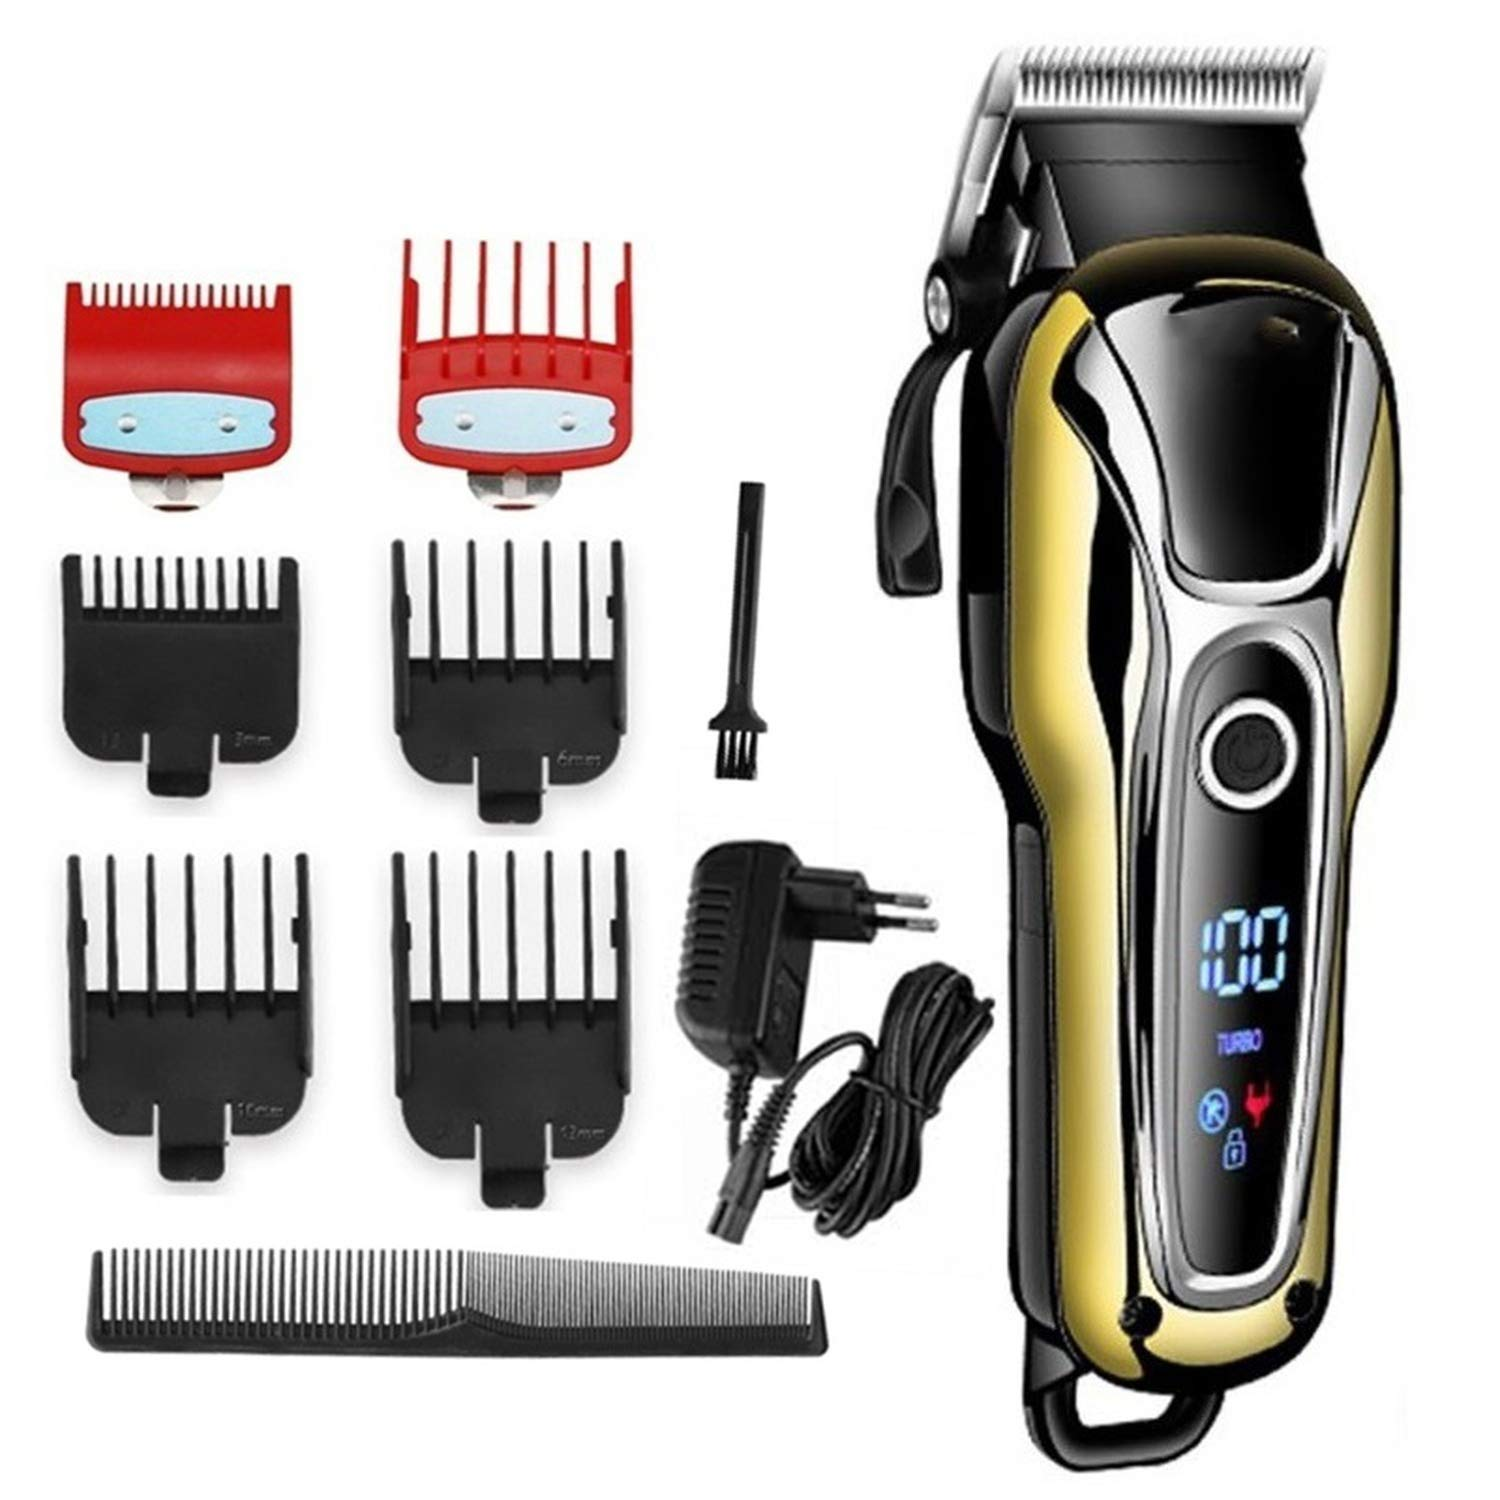 Amazon.com: Barber shop hair clipper professional hair trimmer for